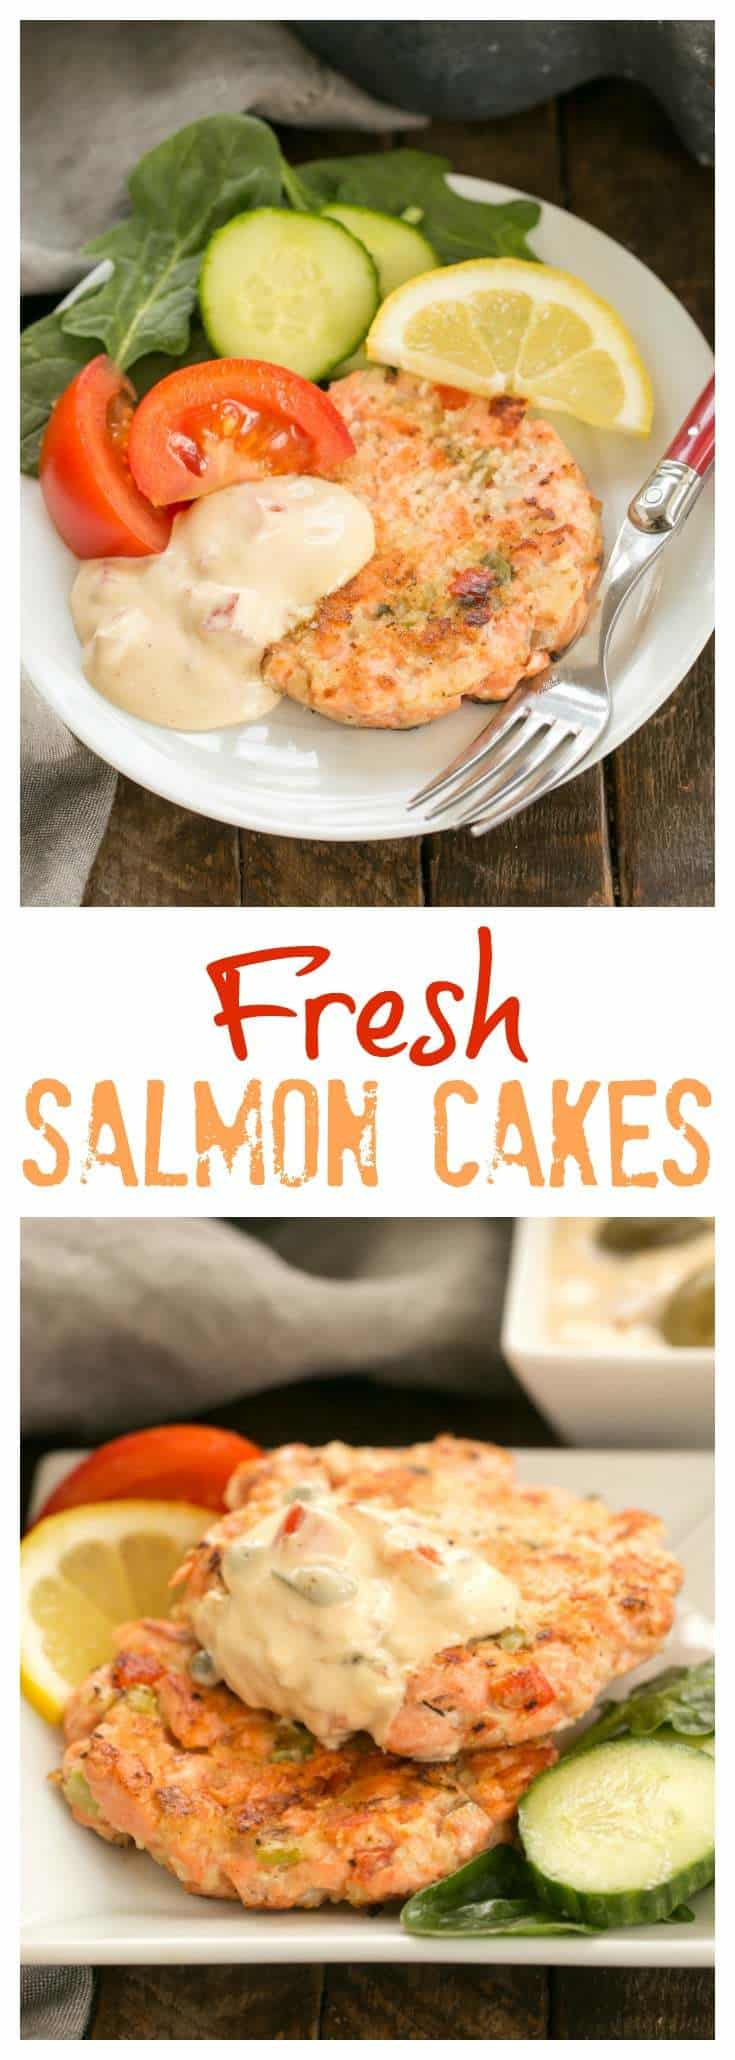 Fresh Salmon Cakes with Homemade Remoulade - Ditch the canned salmon and make these flavorful salmon cakes from scratch! #salmon  #seafood #remoulade